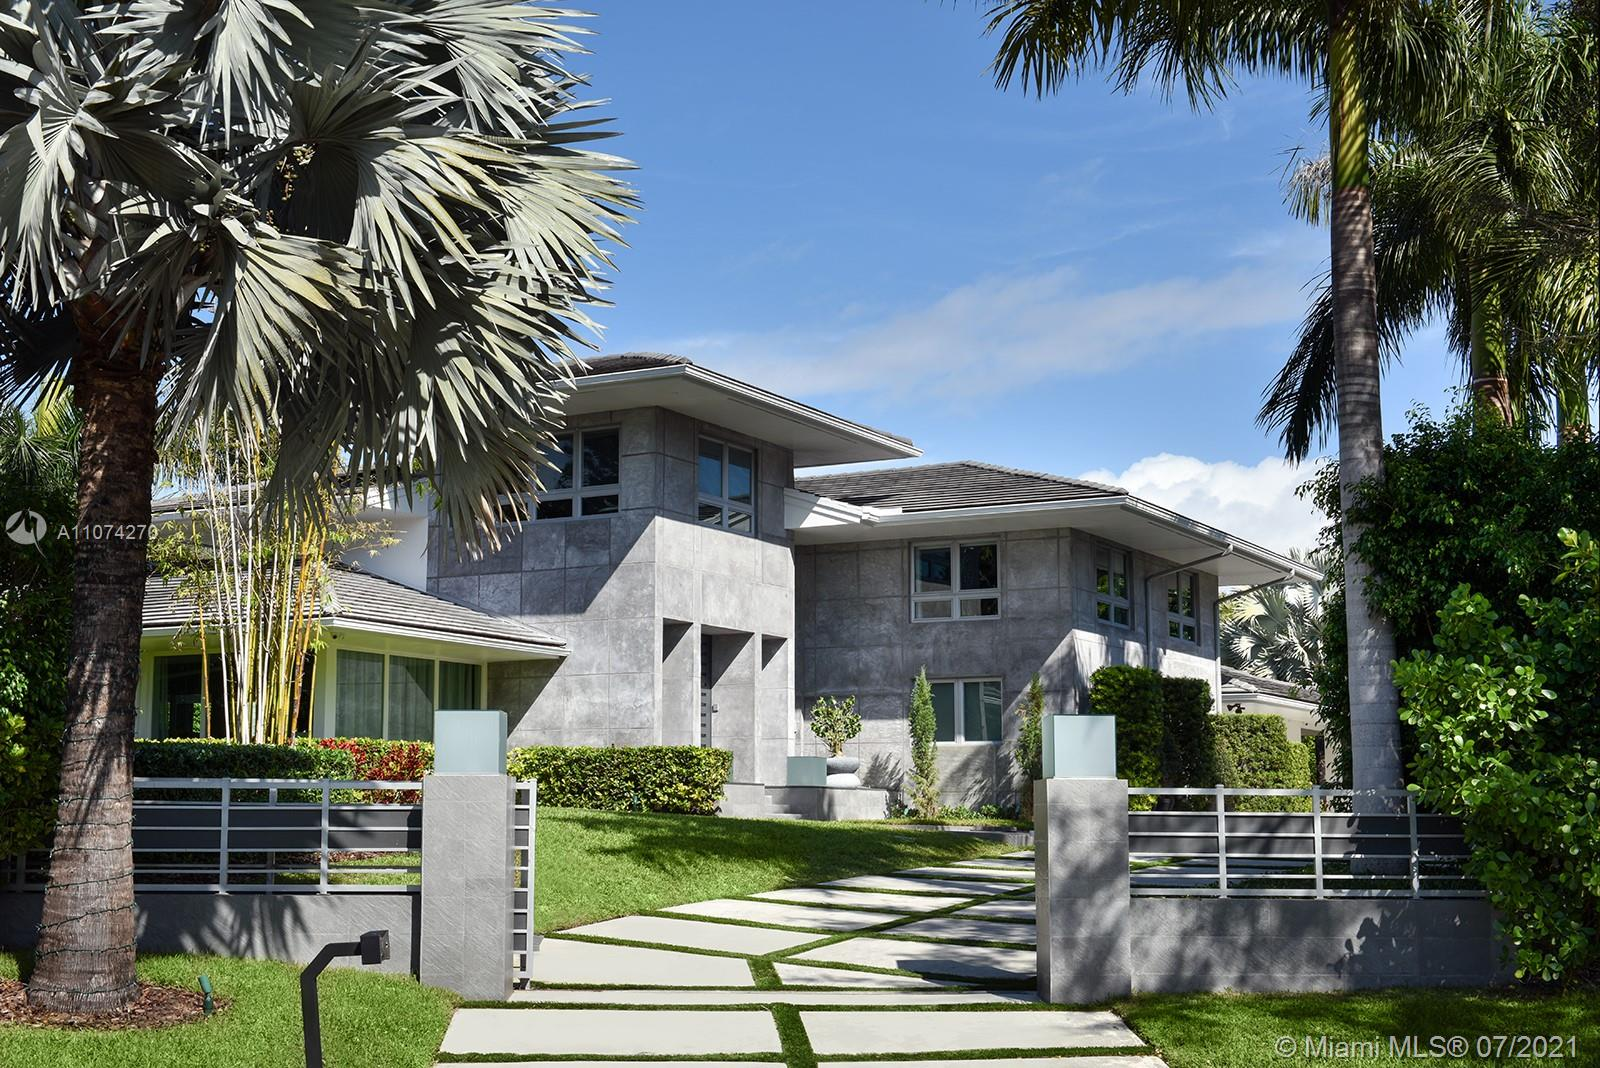 Spectacular and completely upgraded two & a half story home located in the much desired gated Cocoplum. Property has 6,350 sq. ft interior and sits on a lot of over 30,000 sq. ft. Lavish in this 6 Bed and 6 bath home with studio/7th bedroom with floor to ceiling impact windows and marble & wood floors. The spa style salted pool, Jacuzzi & cabana are surrounded by very delicate and sophisticated landscaping. Cocoplum phase I offers 2 tennis courts, guard-gated entrance, patrol by Coral Gables police & Cocoplum civic association (voluntary). The home is an absolute architectural masterpiece. Property is rented until 02/28/2022  for $ 21,000 per month